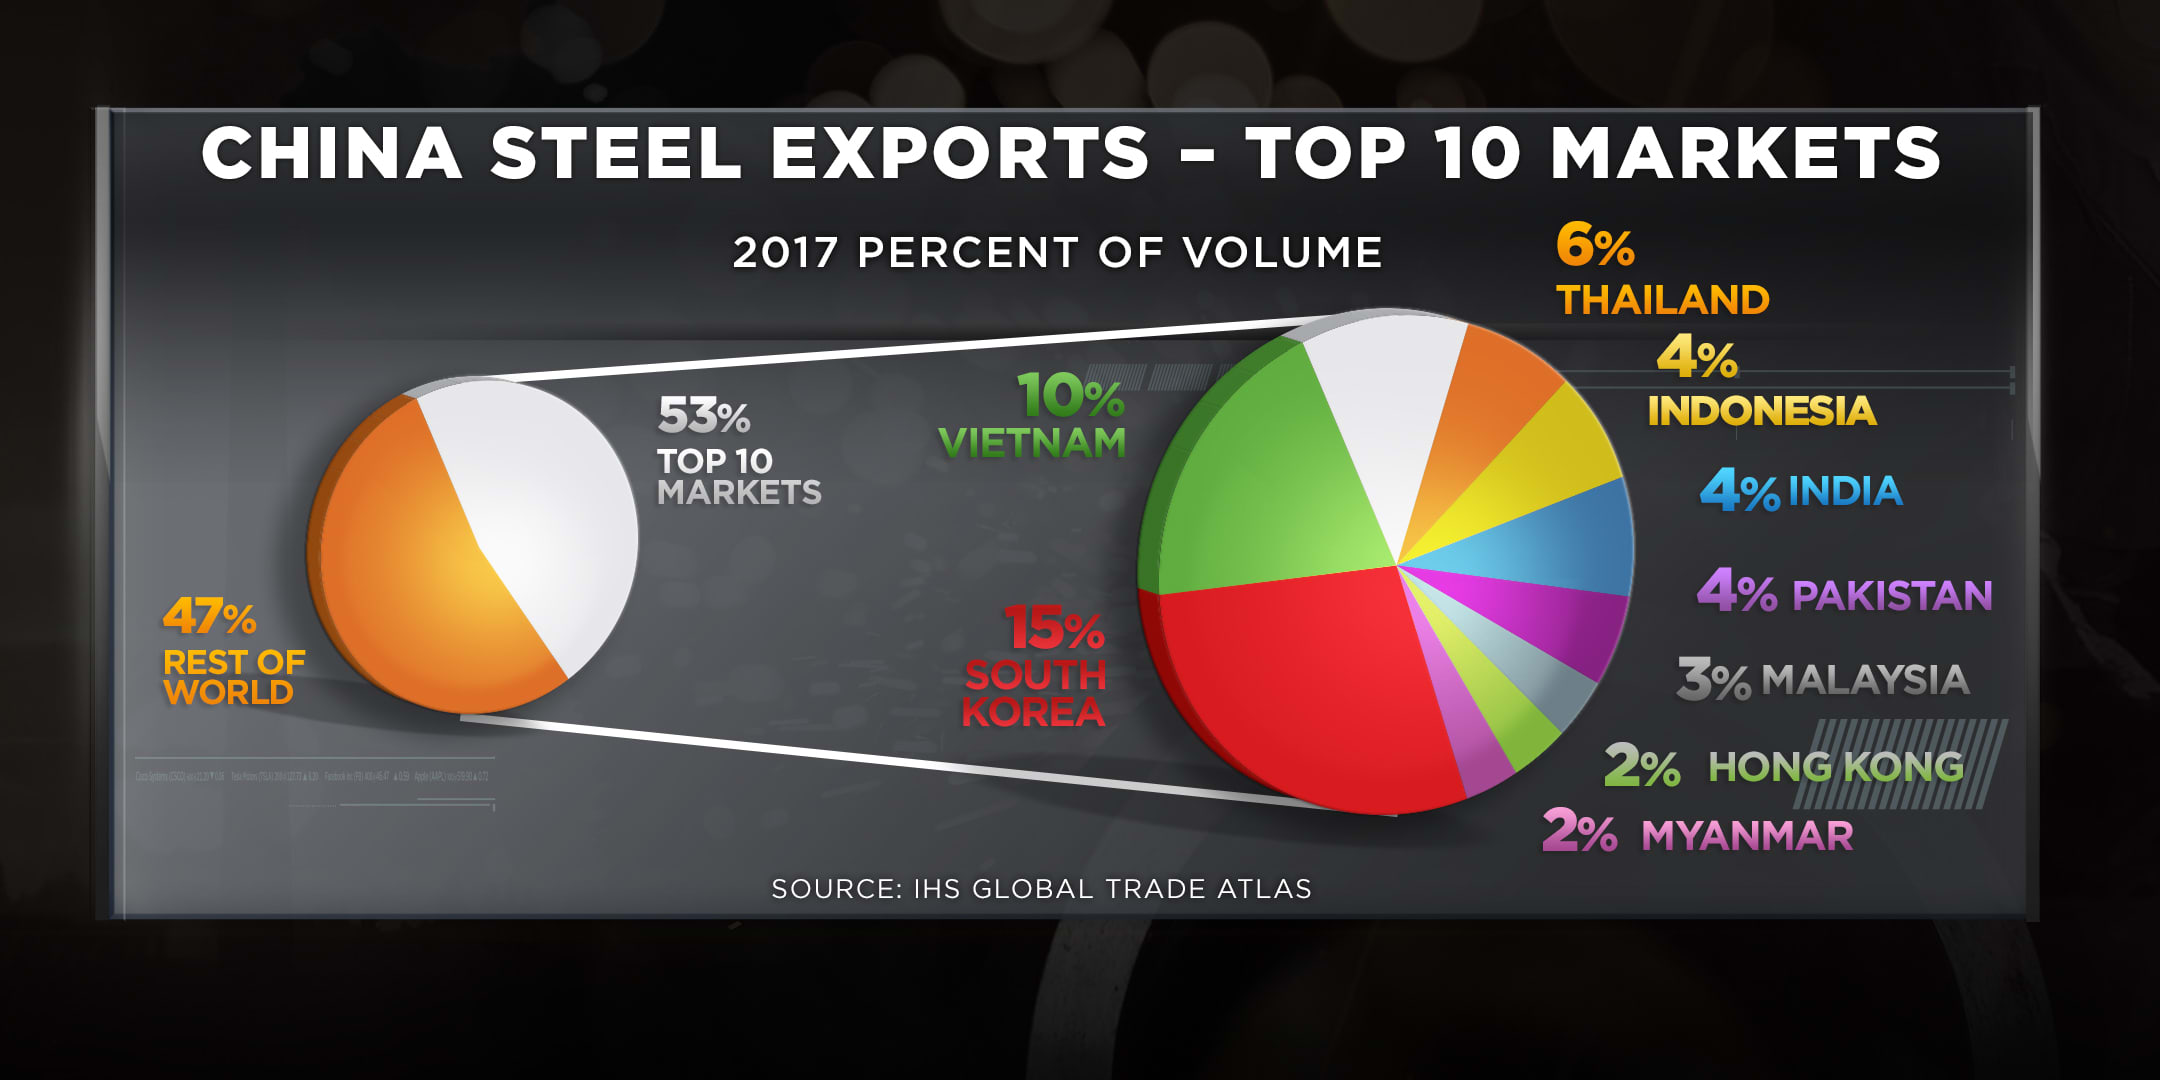 China steel exports